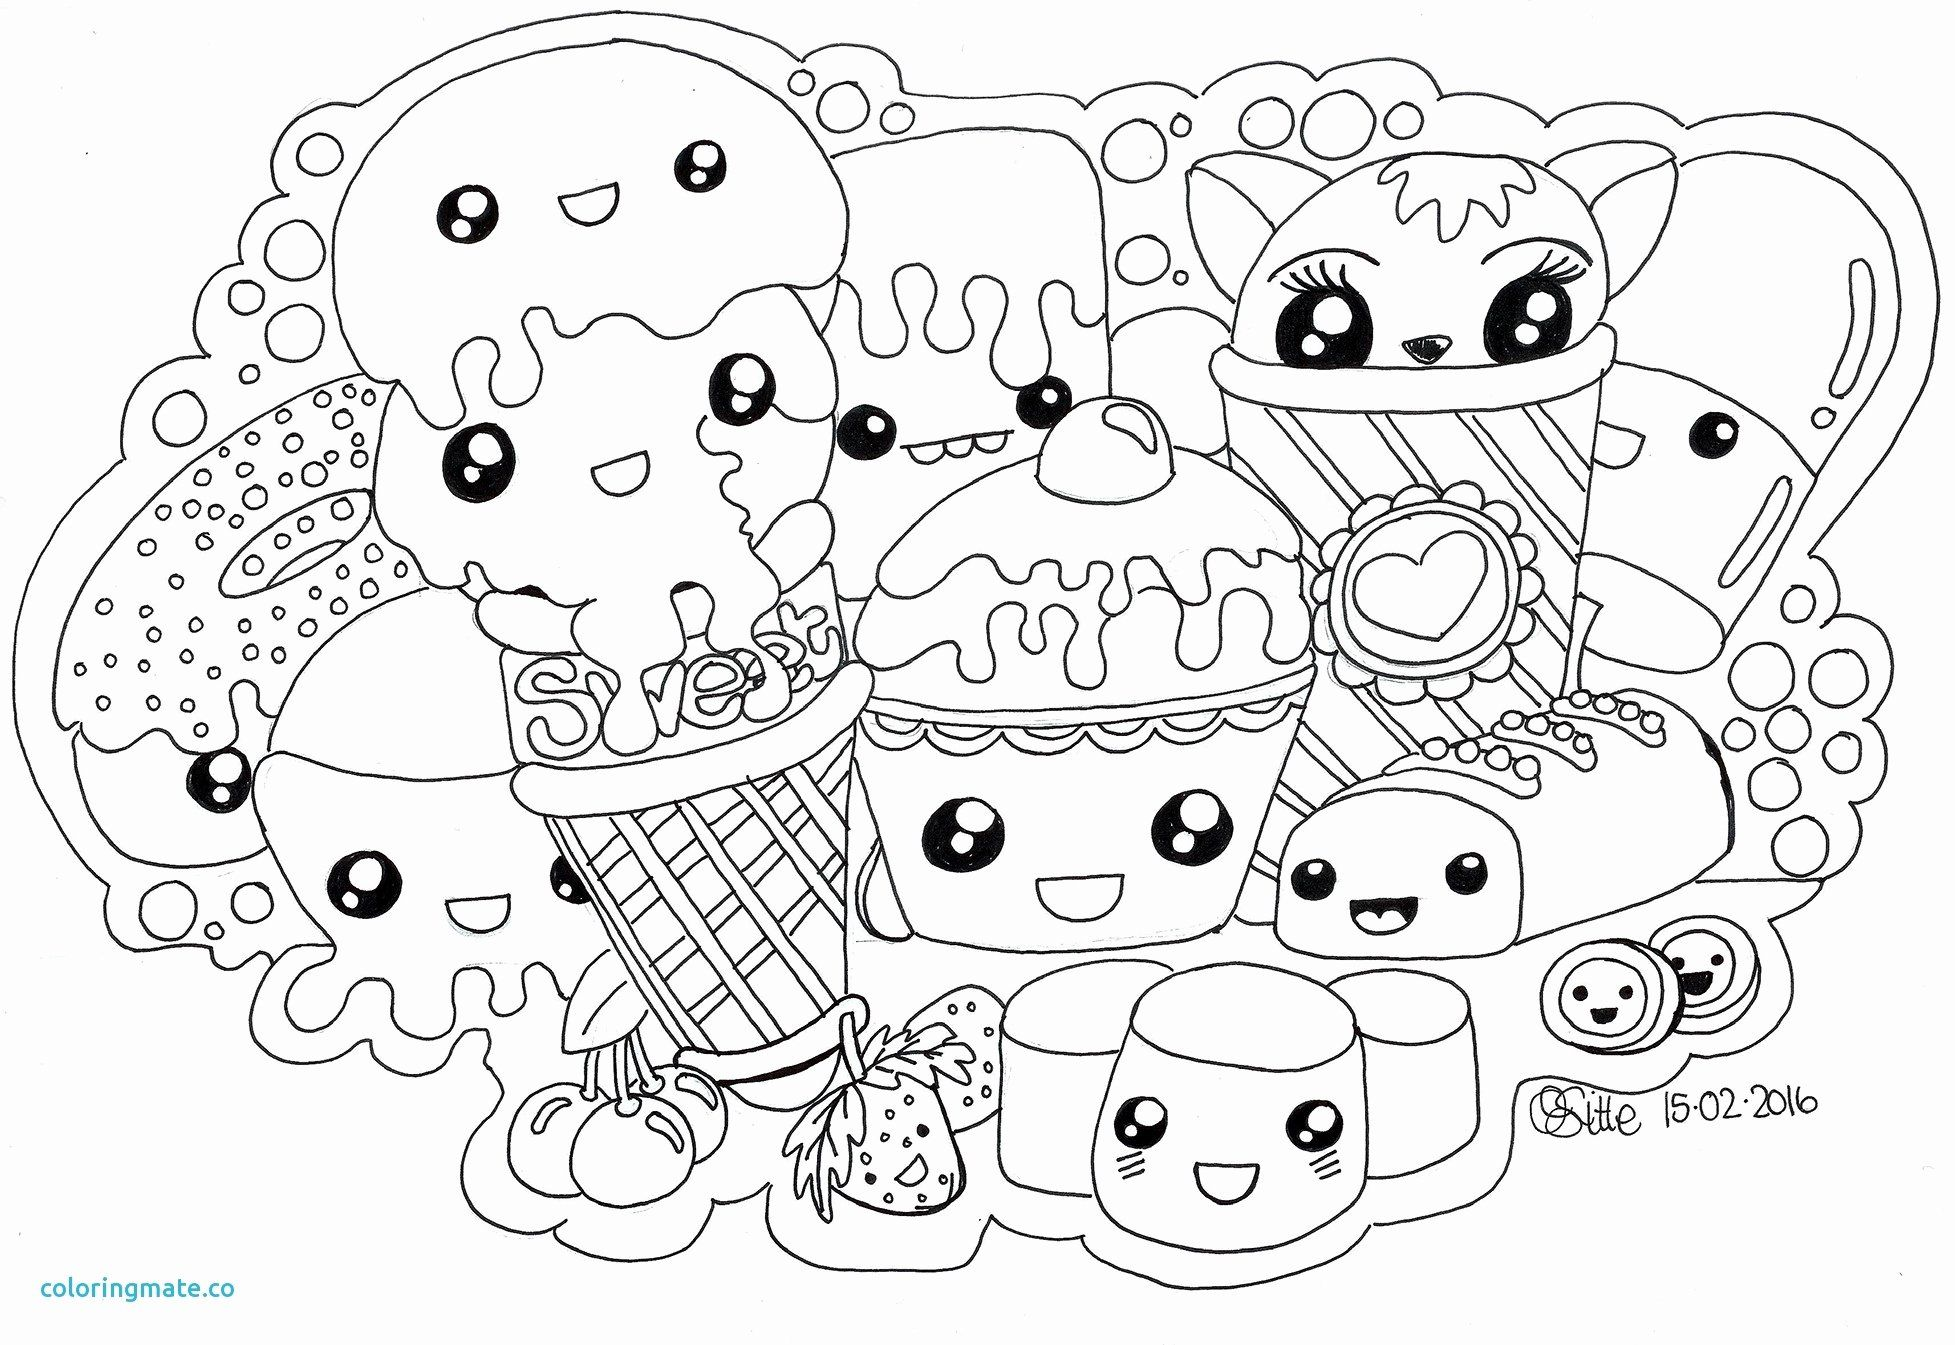 Kawaii Coloring Pages Printable In 2020 Unicorn Coloring Pages